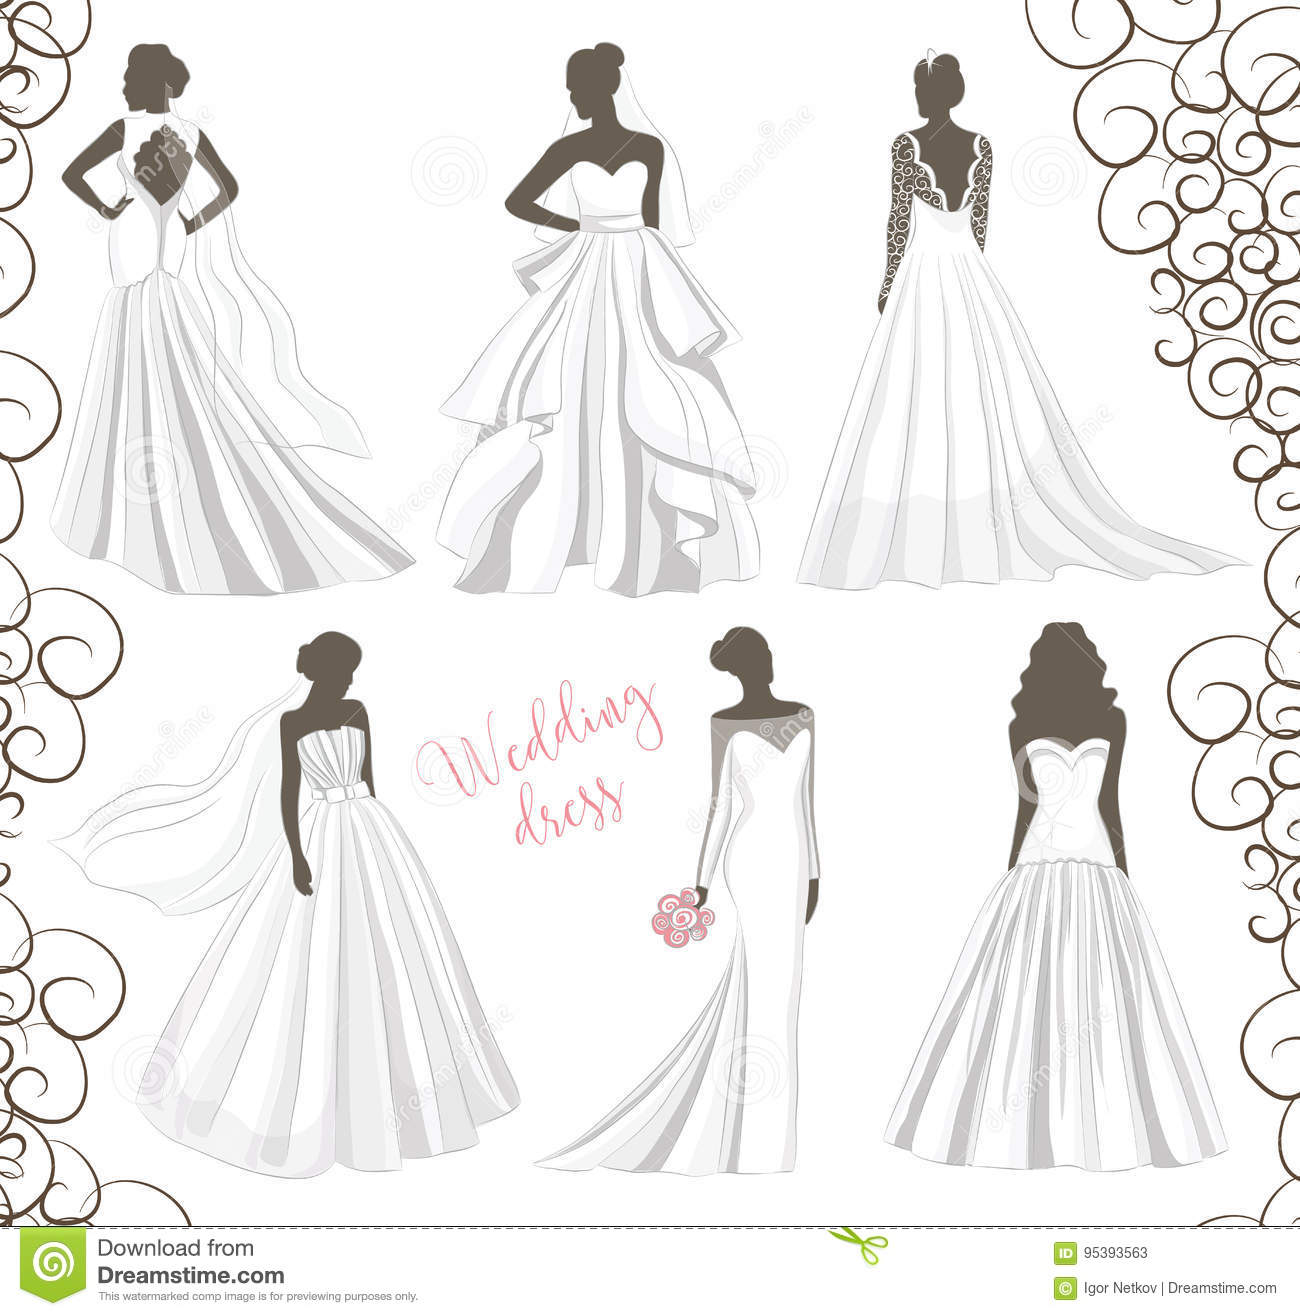 d22b8f58036 Wedding dresses in Different styles. Fashion bride Dress made in modern  style.